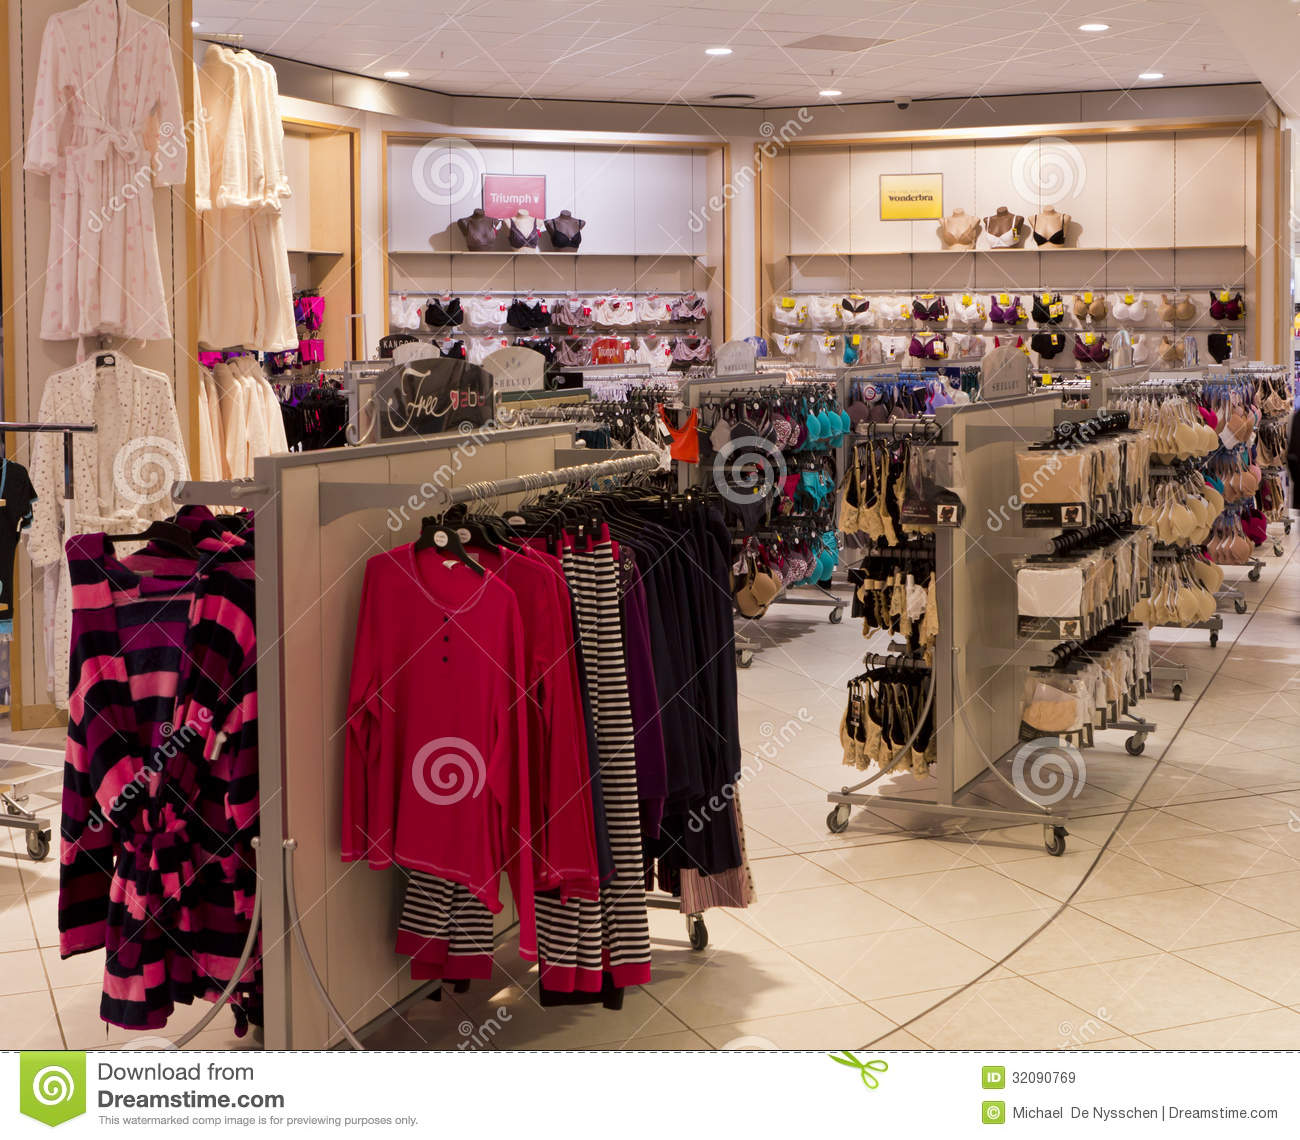 The underwear and sleepwear section for ladies in a clothing store